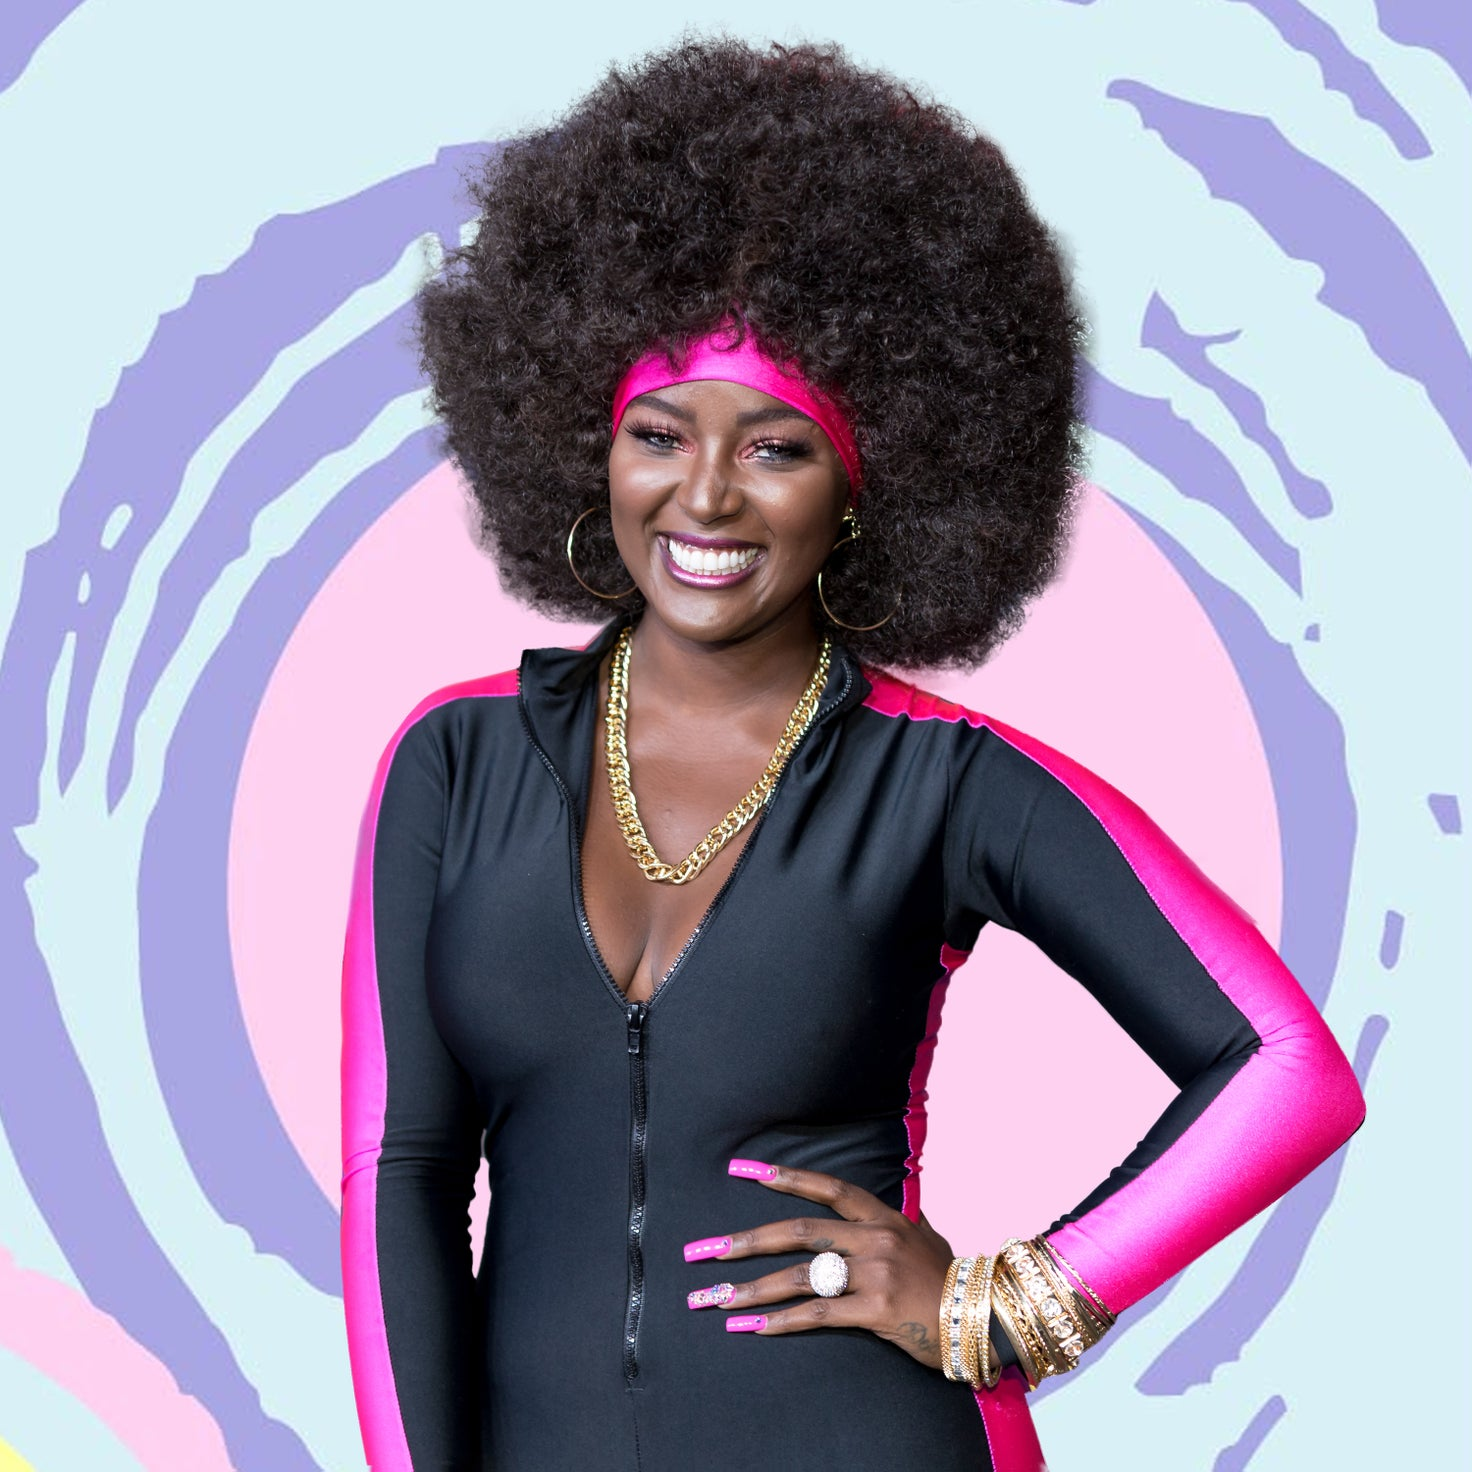 Amara La Negra Wants Everyone To Know She Will Not Be Defined By Her Hair